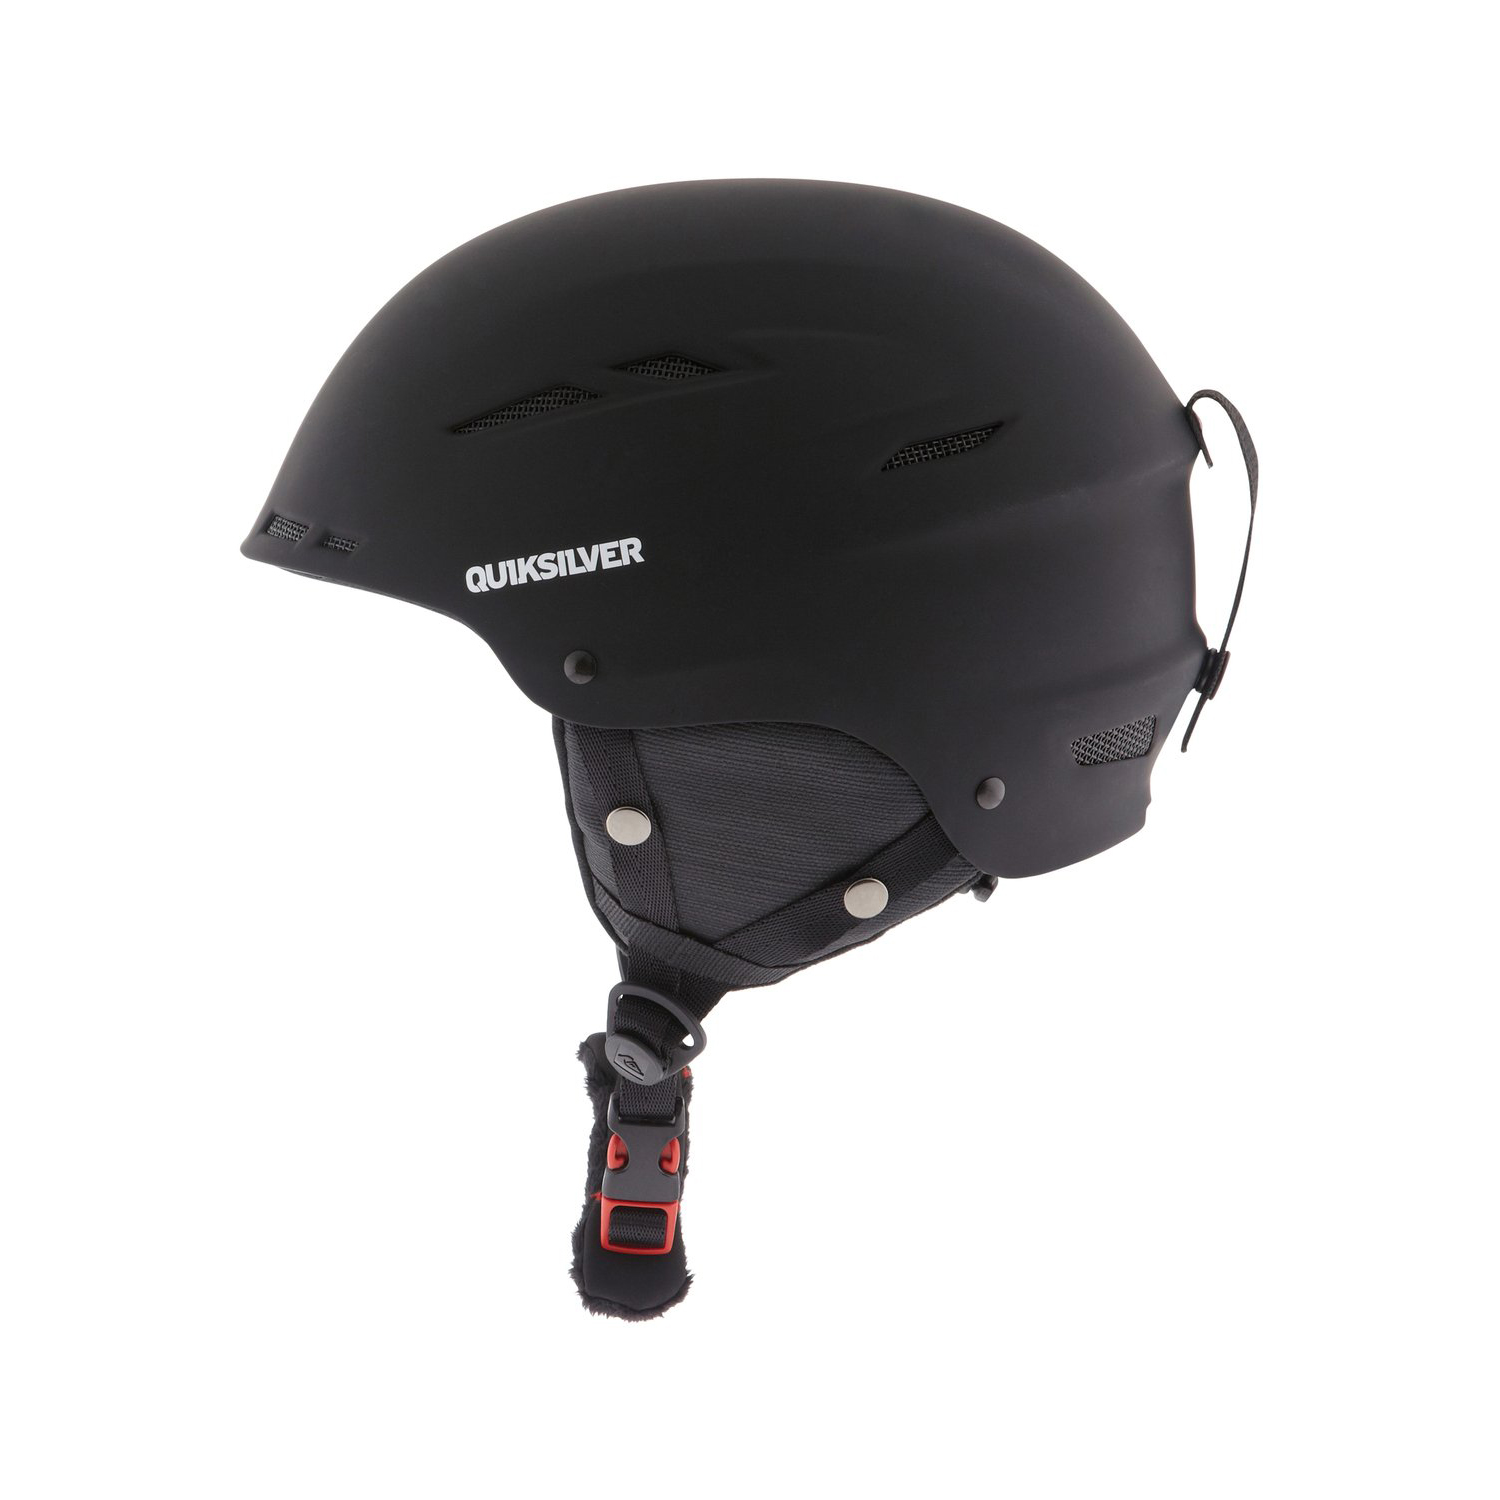 Bicycle Helmets for the 2016 Season